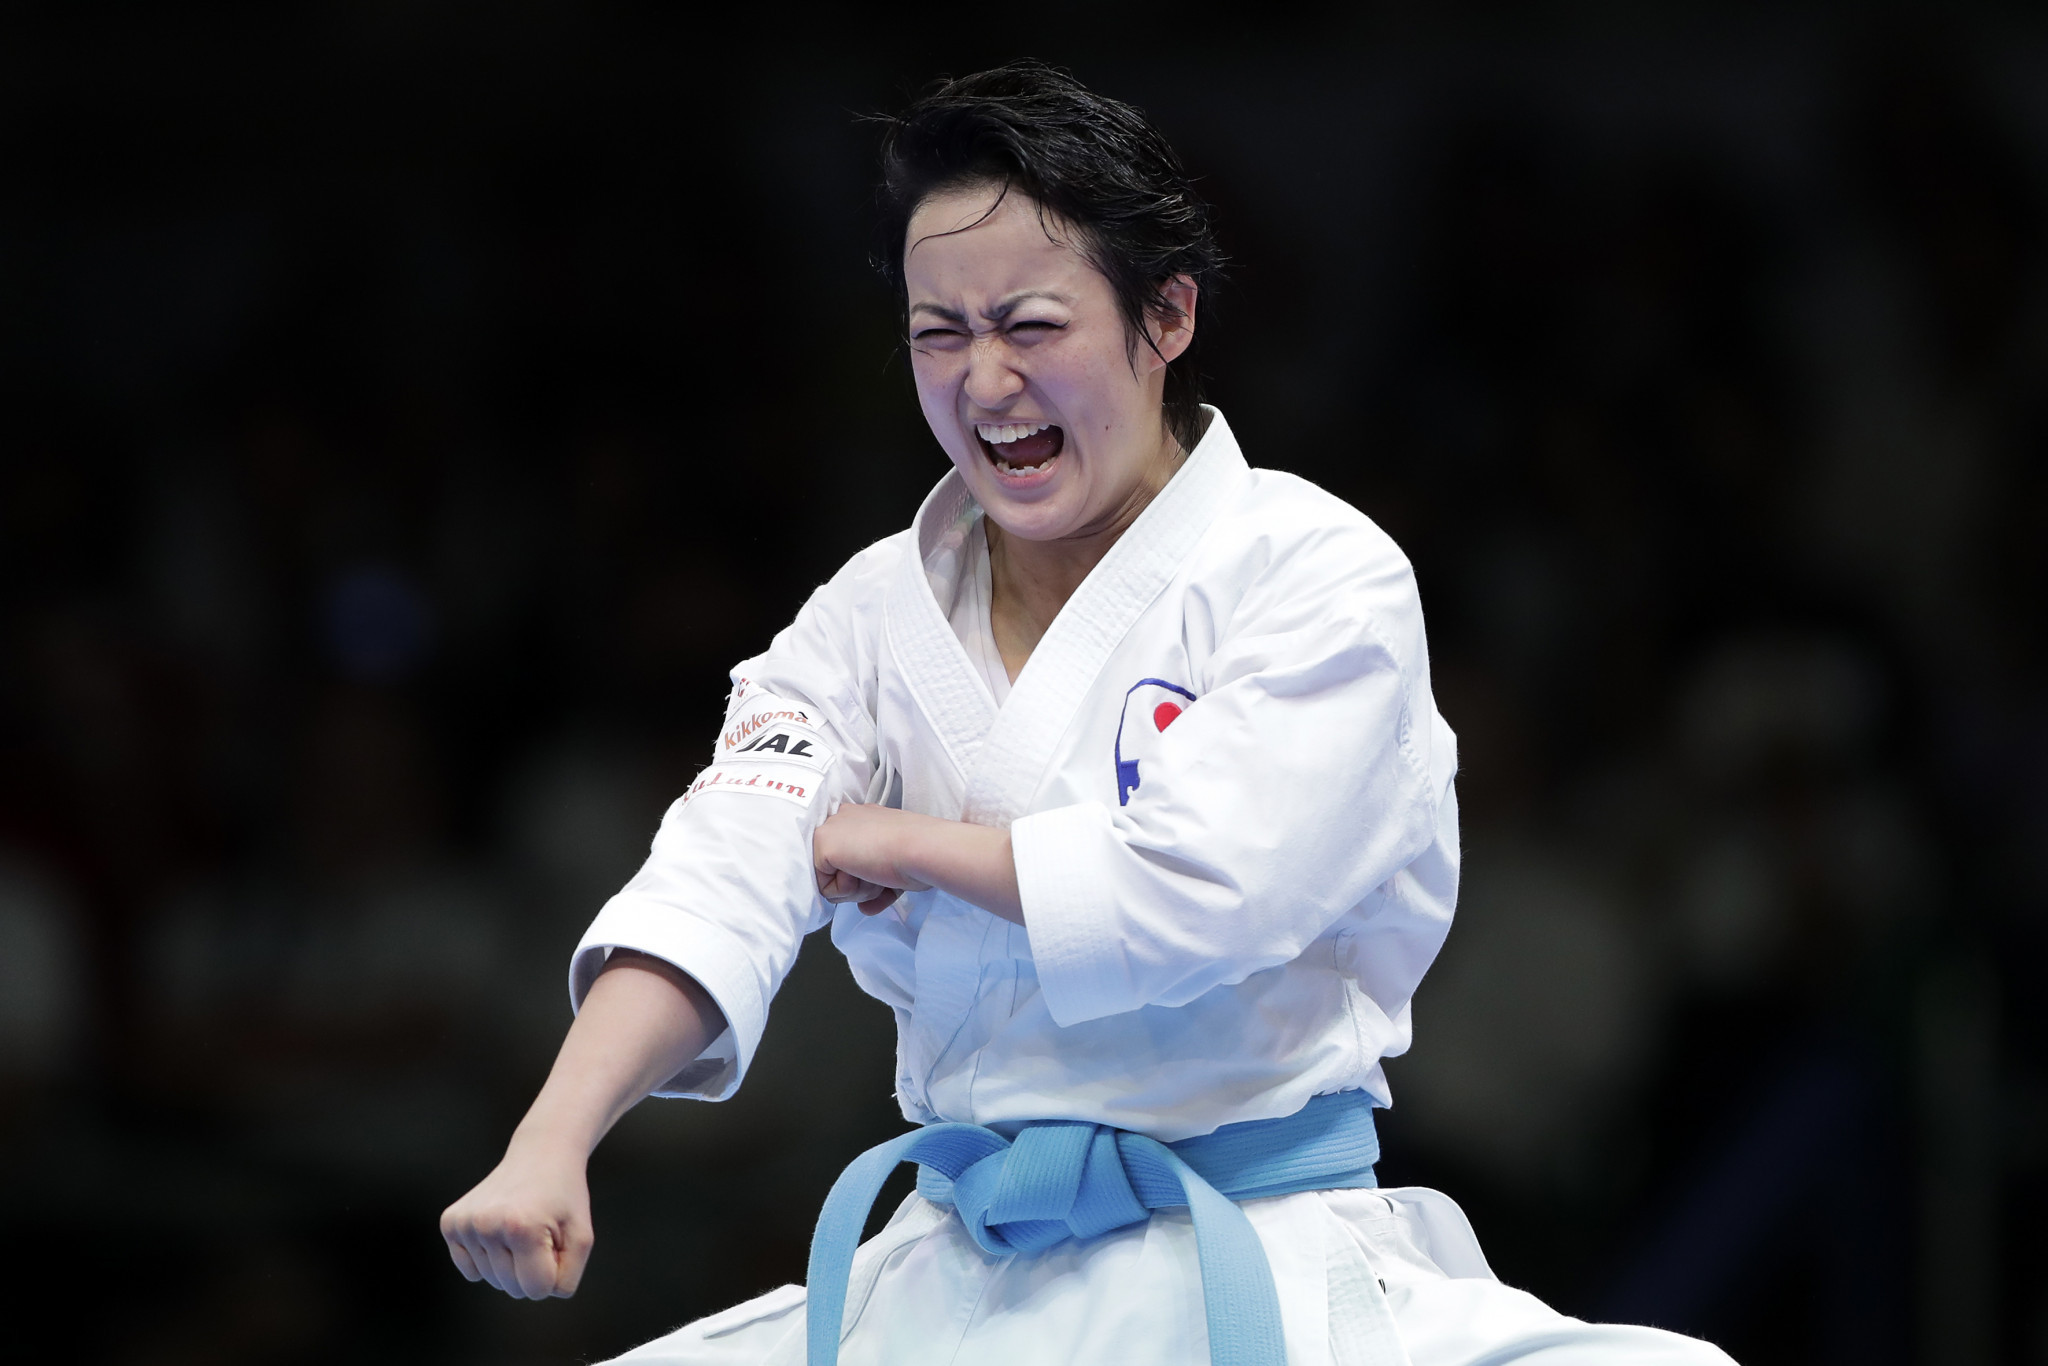 Karate star Shimizu joins campaign to inspire following Tokyo 2020 delay